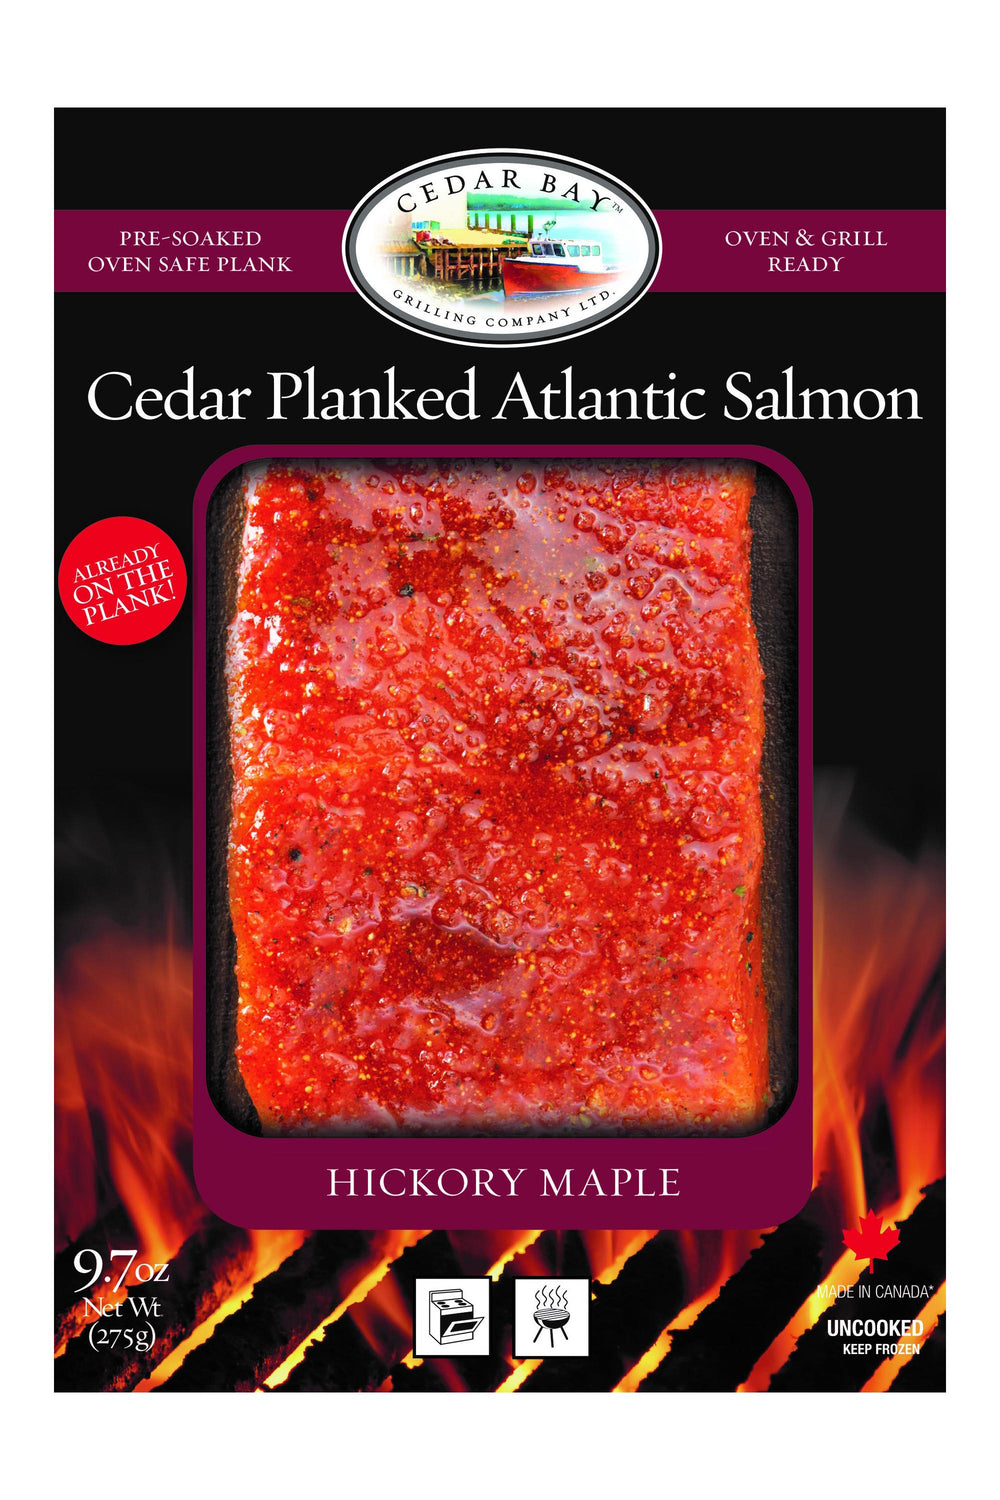 9.7 oz Cedar Planked Atlantic Salmon - Hickory Maple